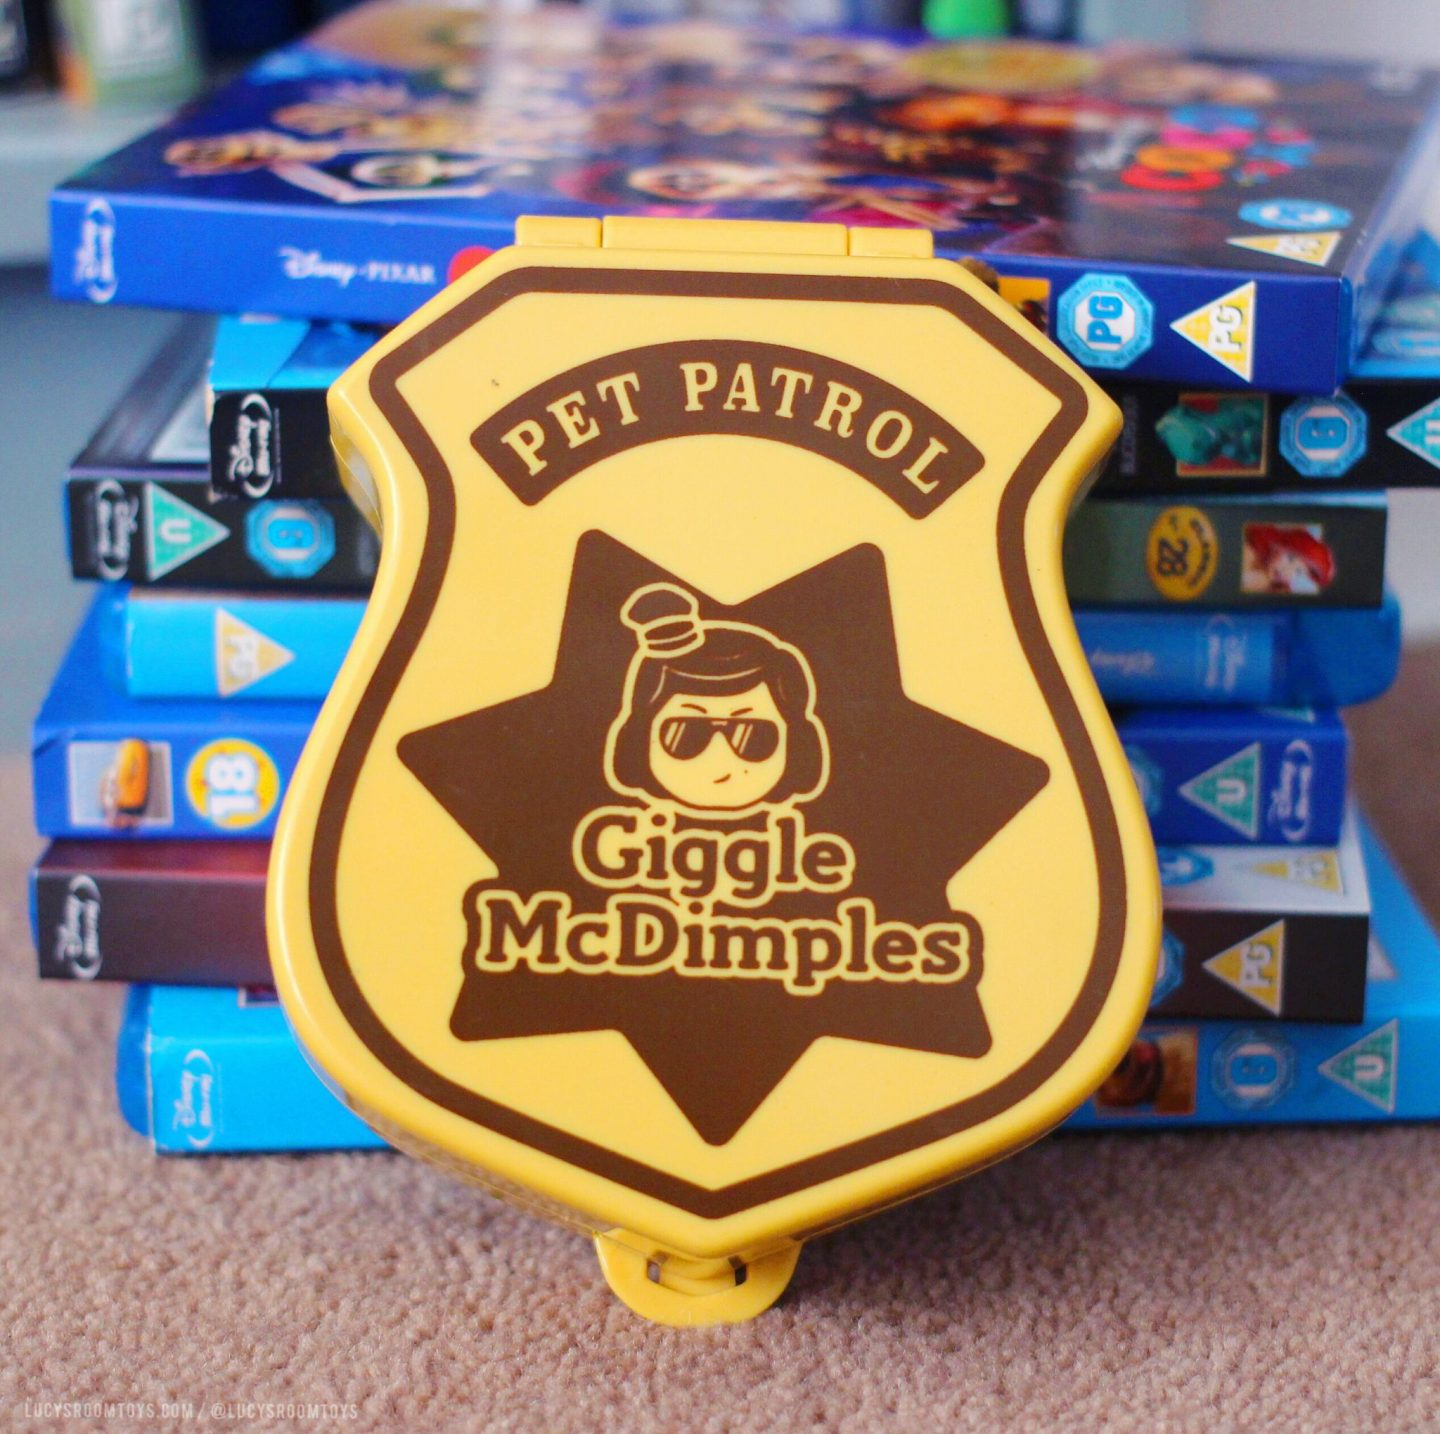 Giggle McDimples Pet Patrol Playset by Mattel